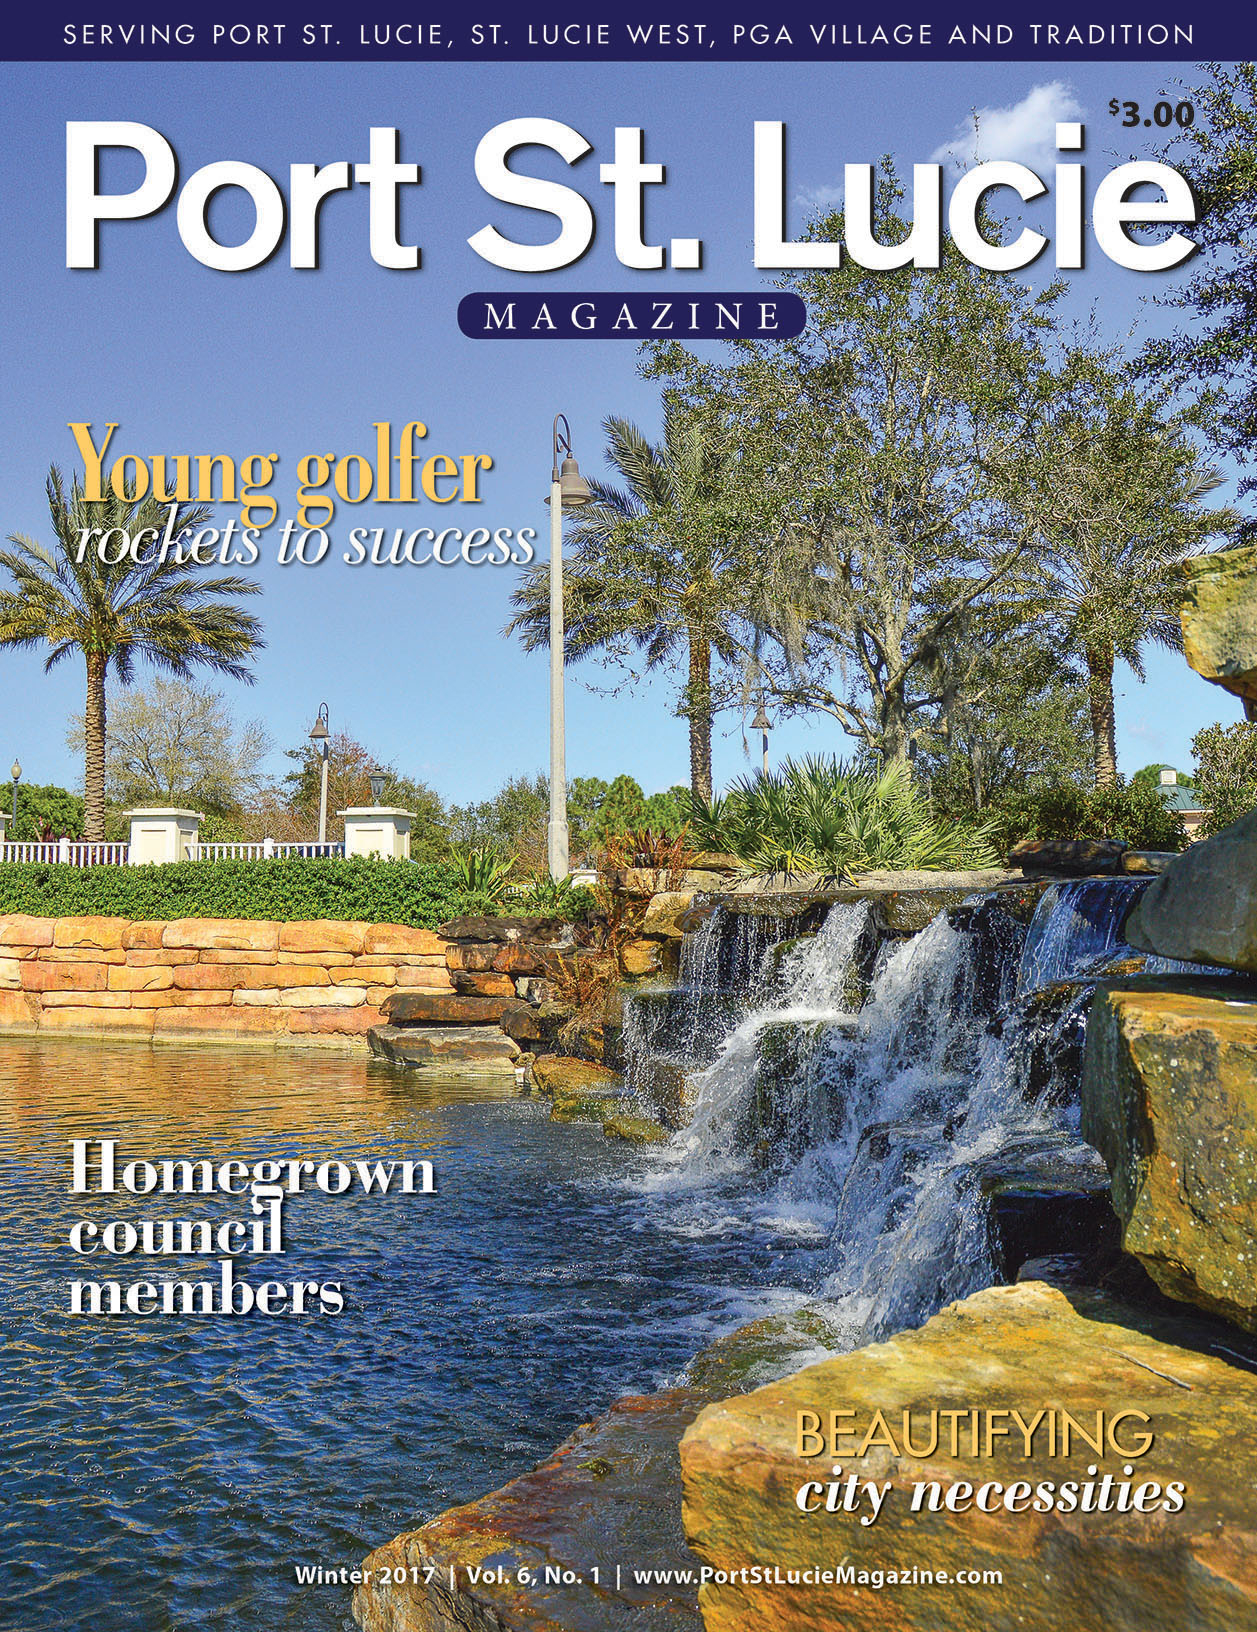 Port St. Lucie Magazine - Vol. 6, No. 1